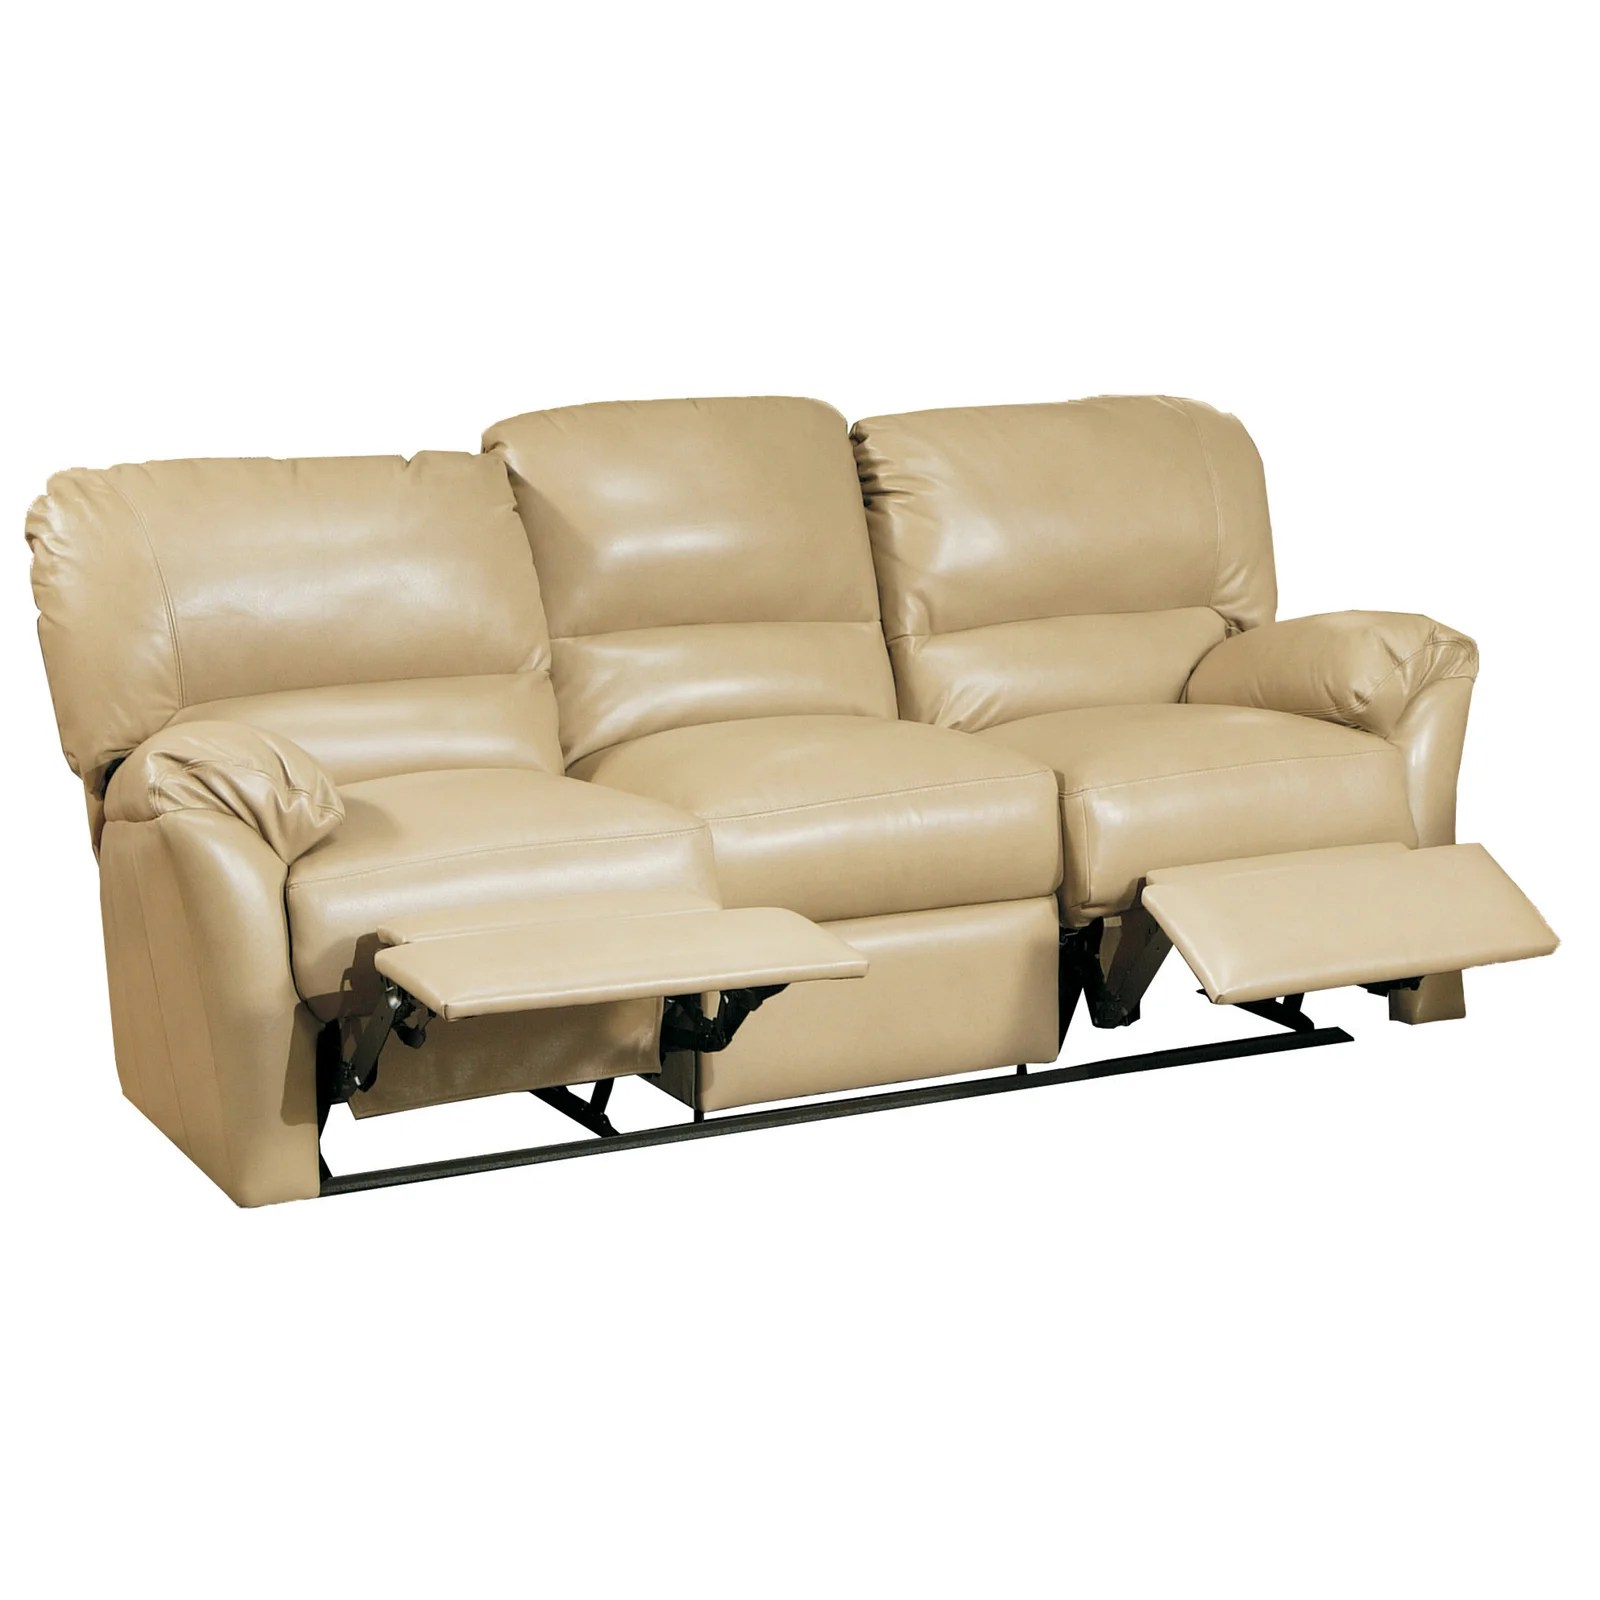 Omnia Leather Mandalay Reclining Sofa Reviews Wayfair